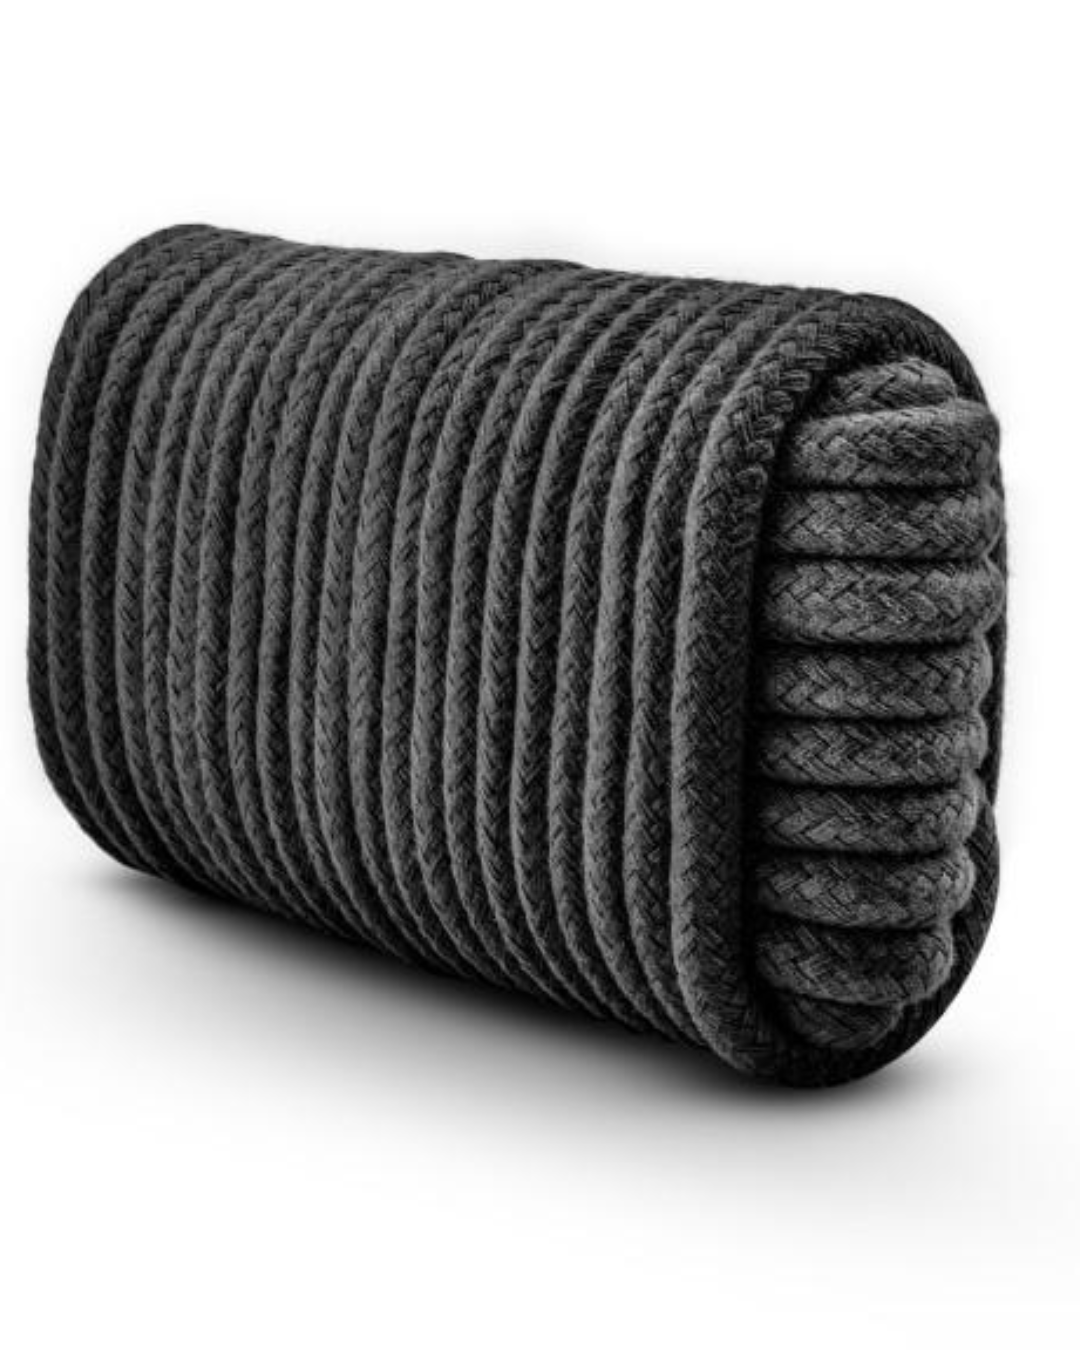 Temtasia Cotton Bondage Rope 32 Feet - Black